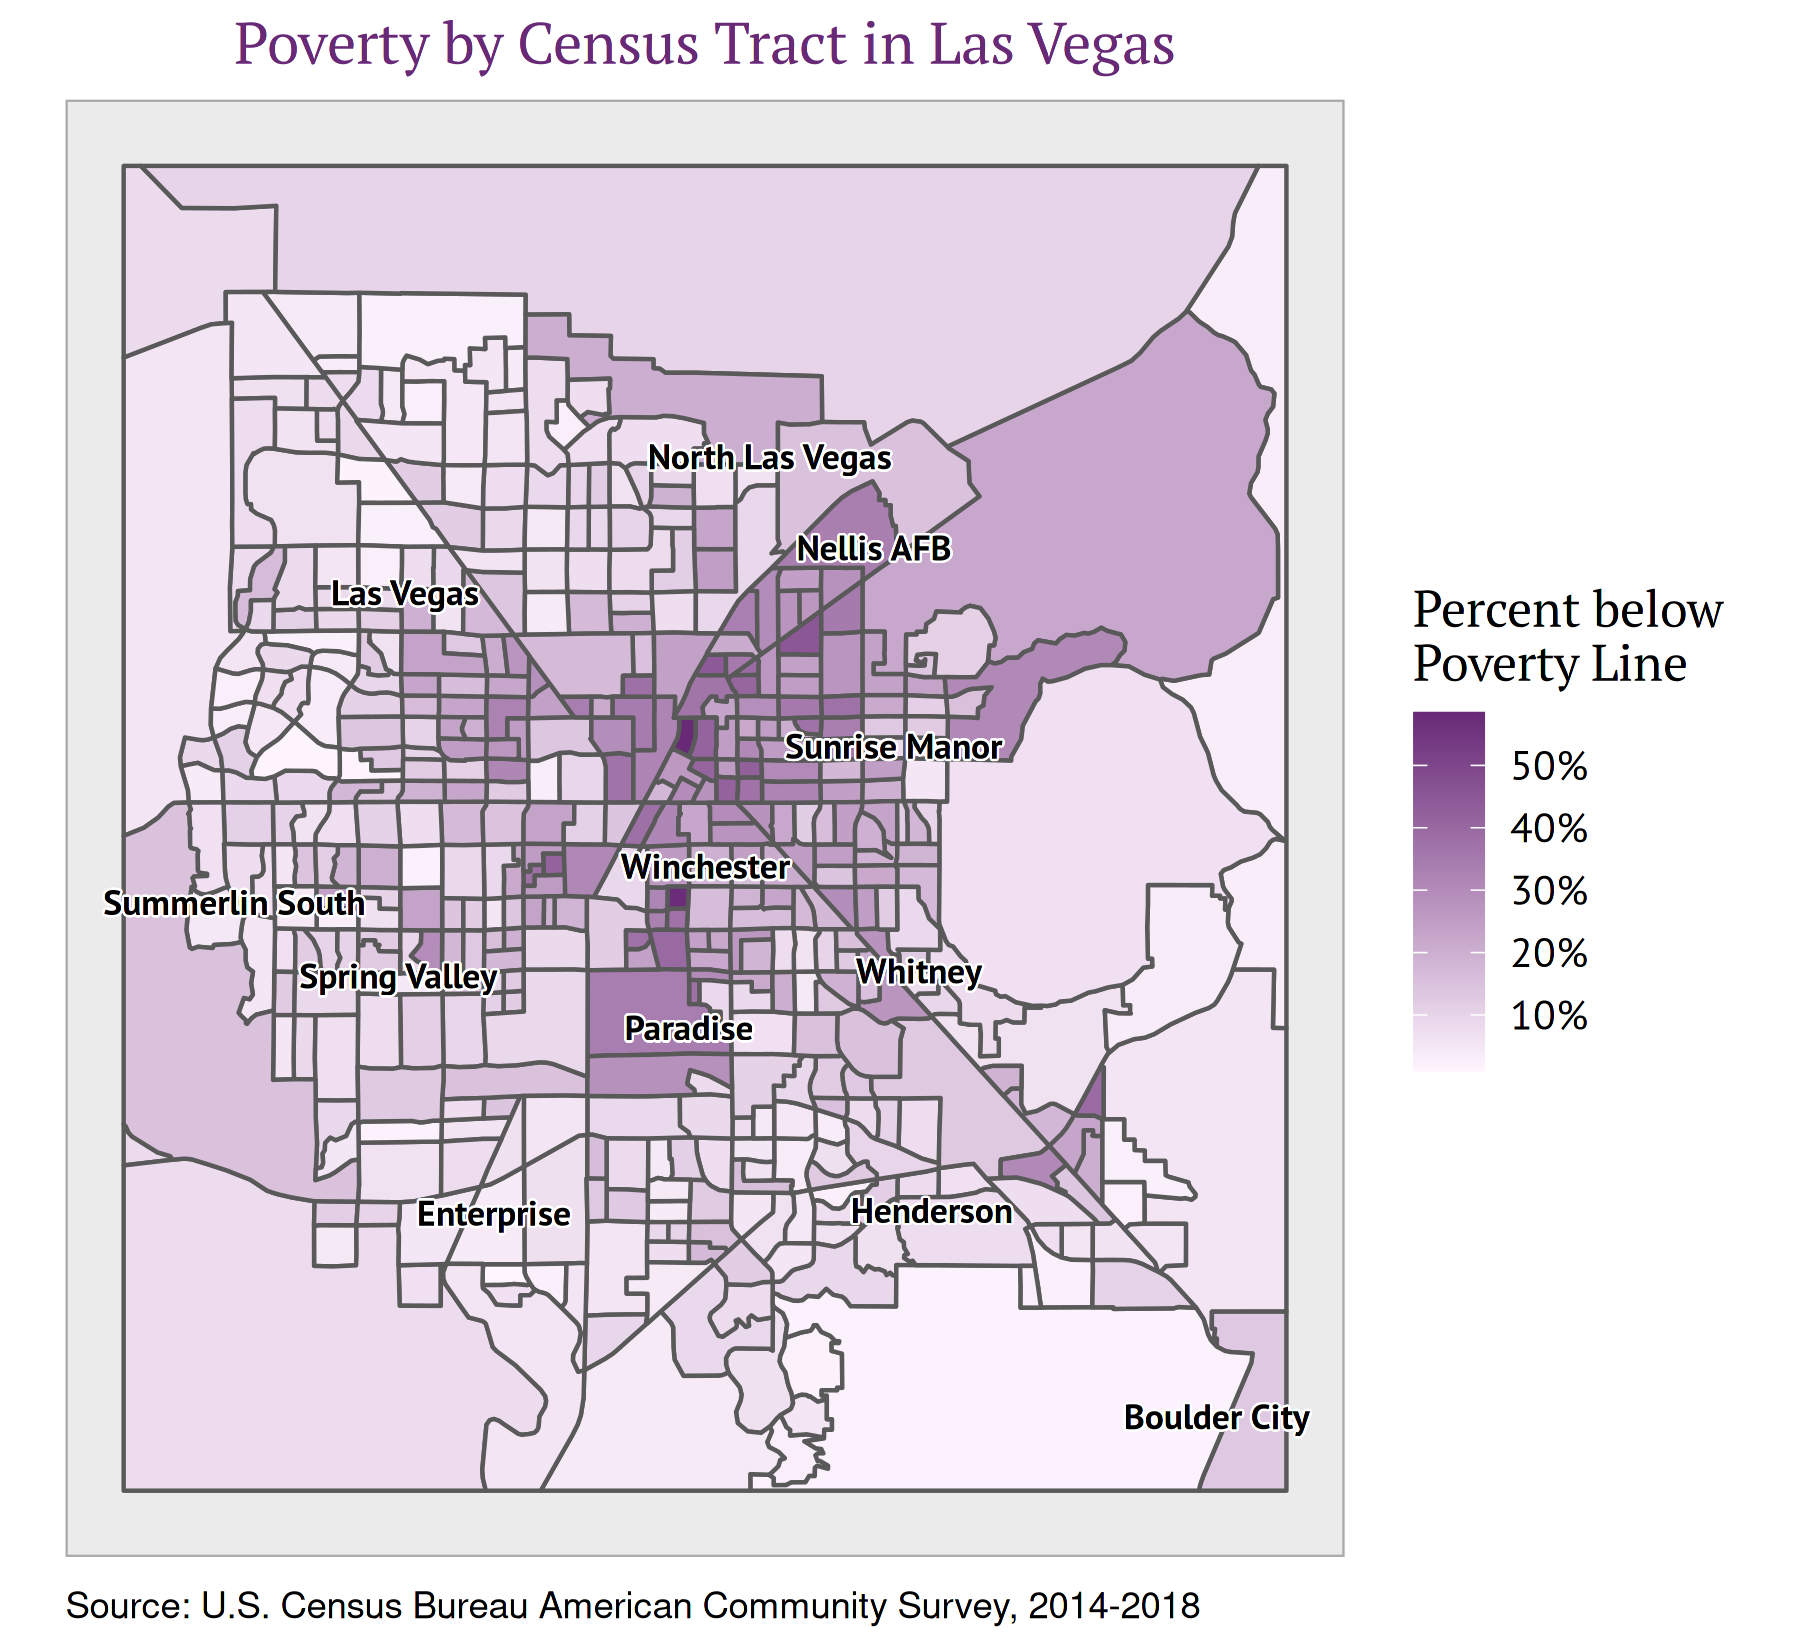 Figure 5: Poverty by Census Tract in Las Vegas, Nevada